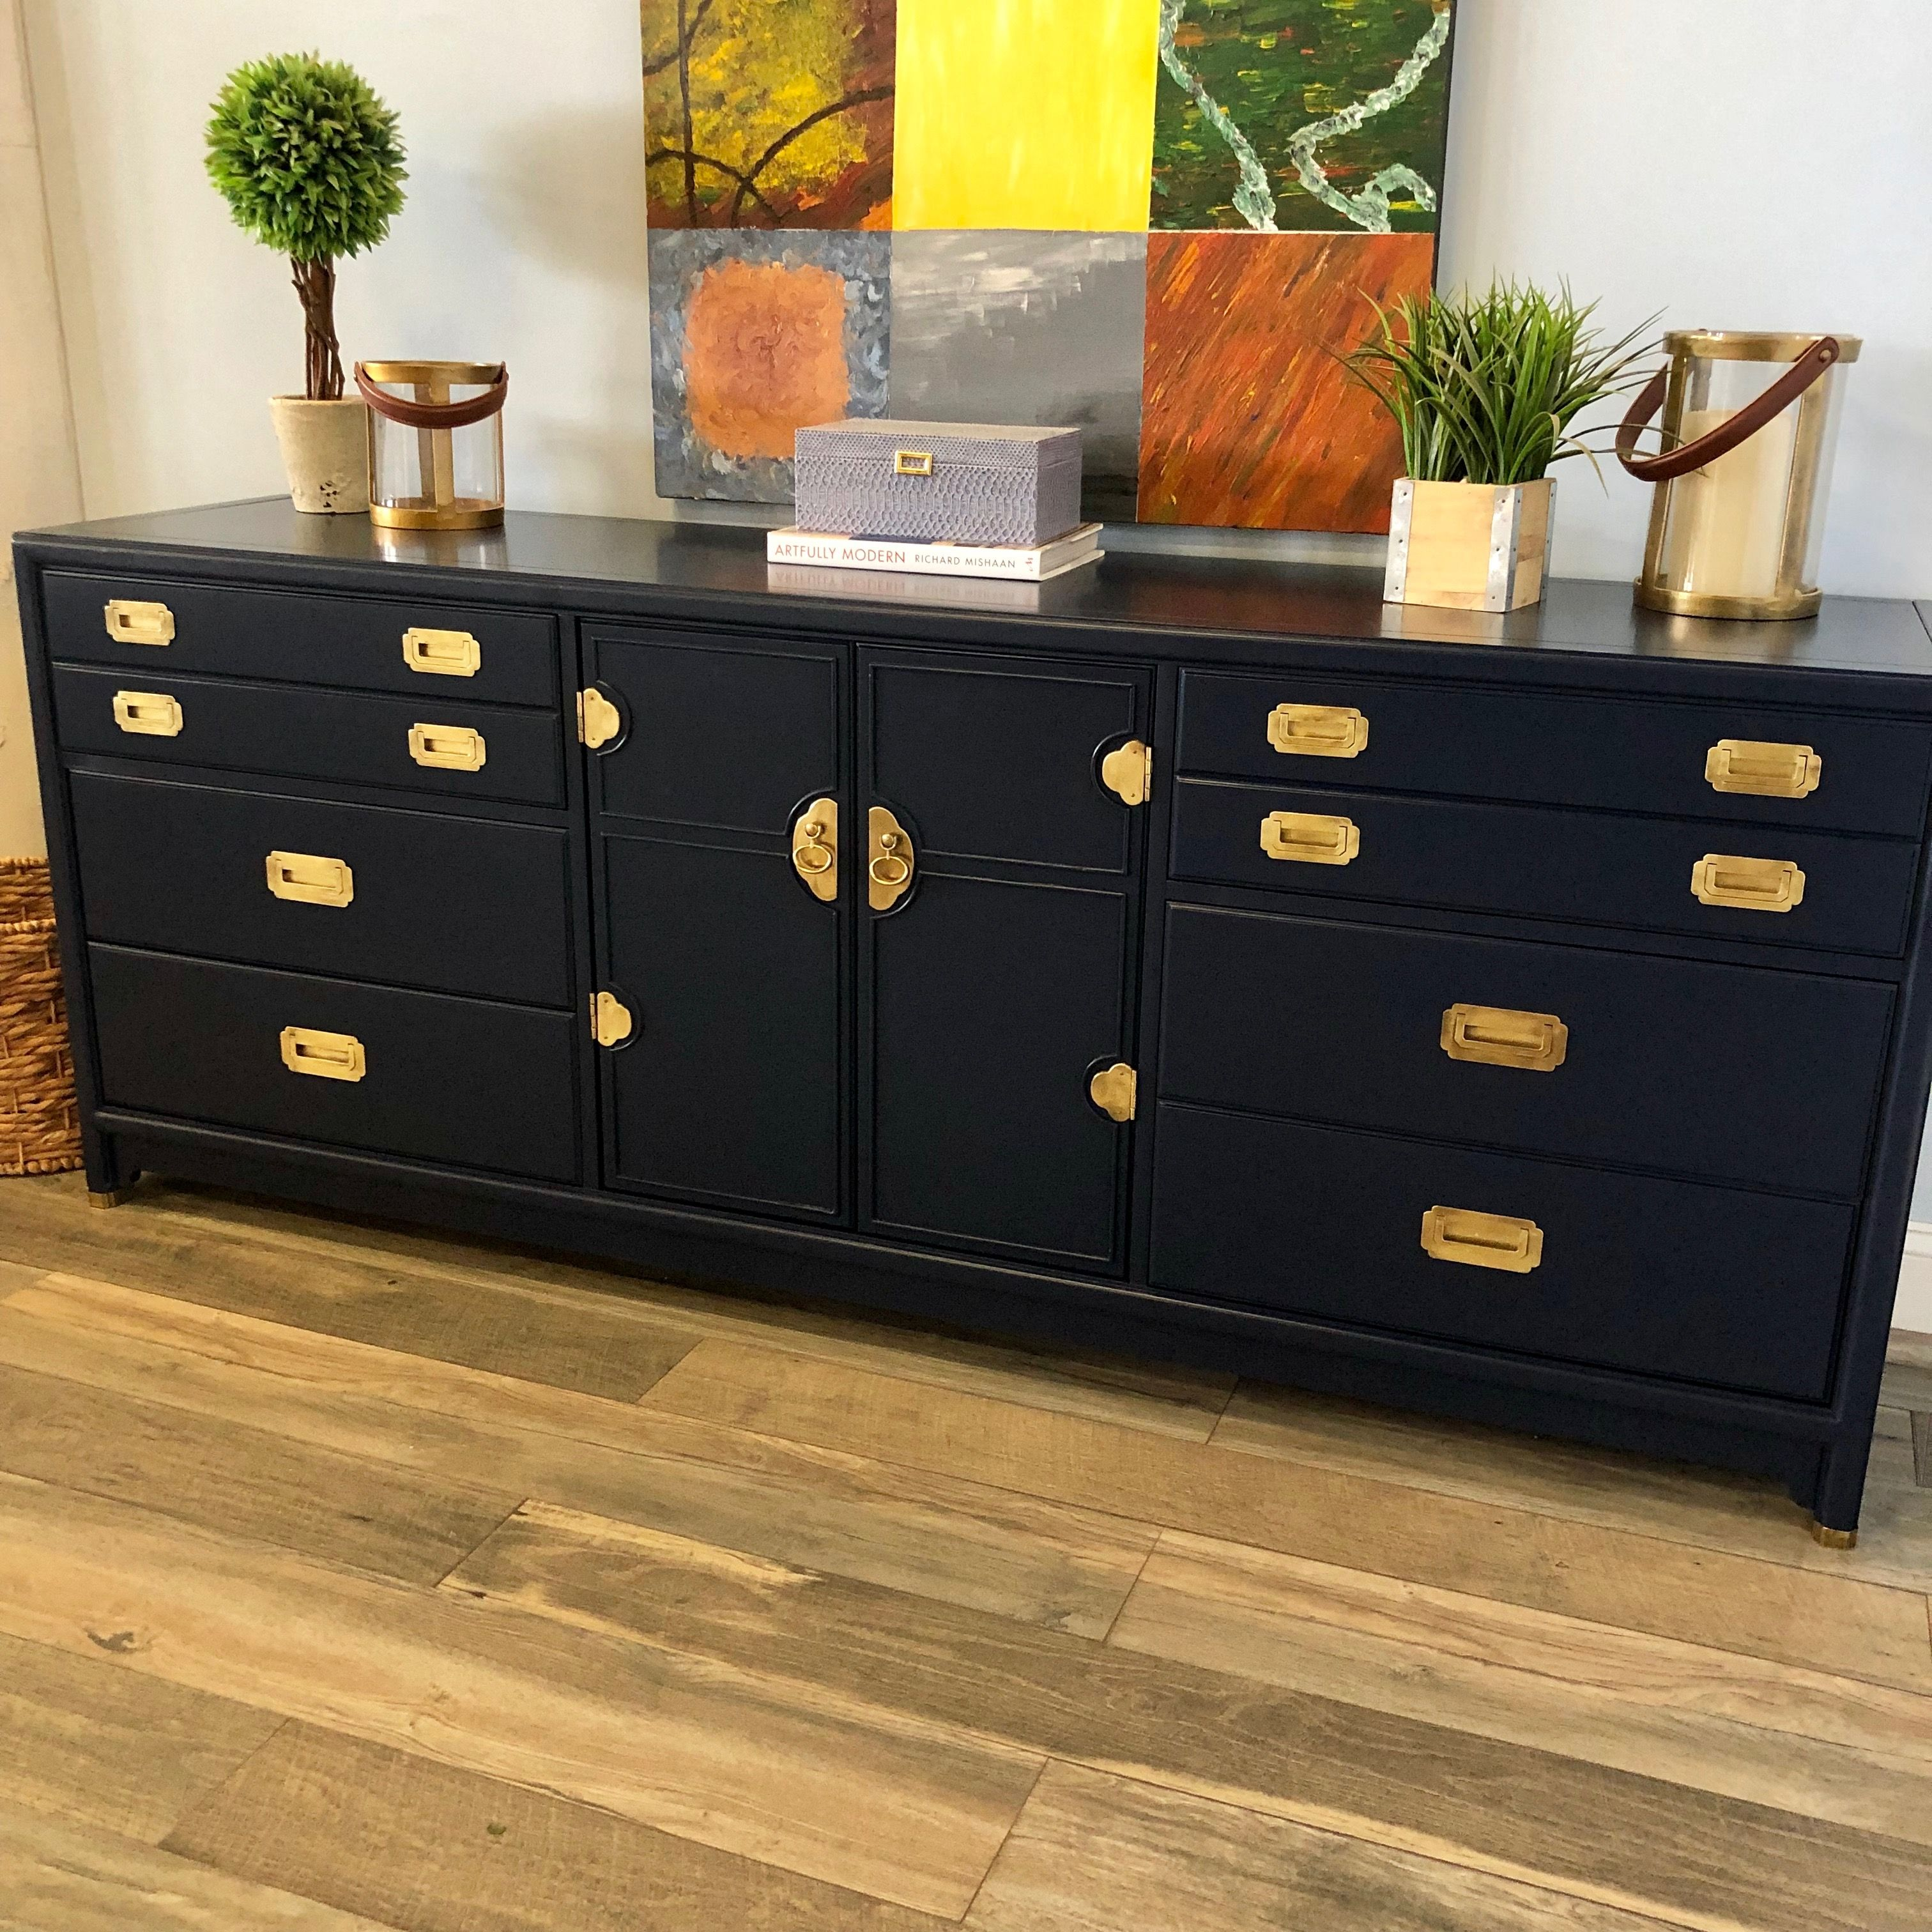 Navy Painted Campaign Dresser Www Vintagerefined Com Campaign